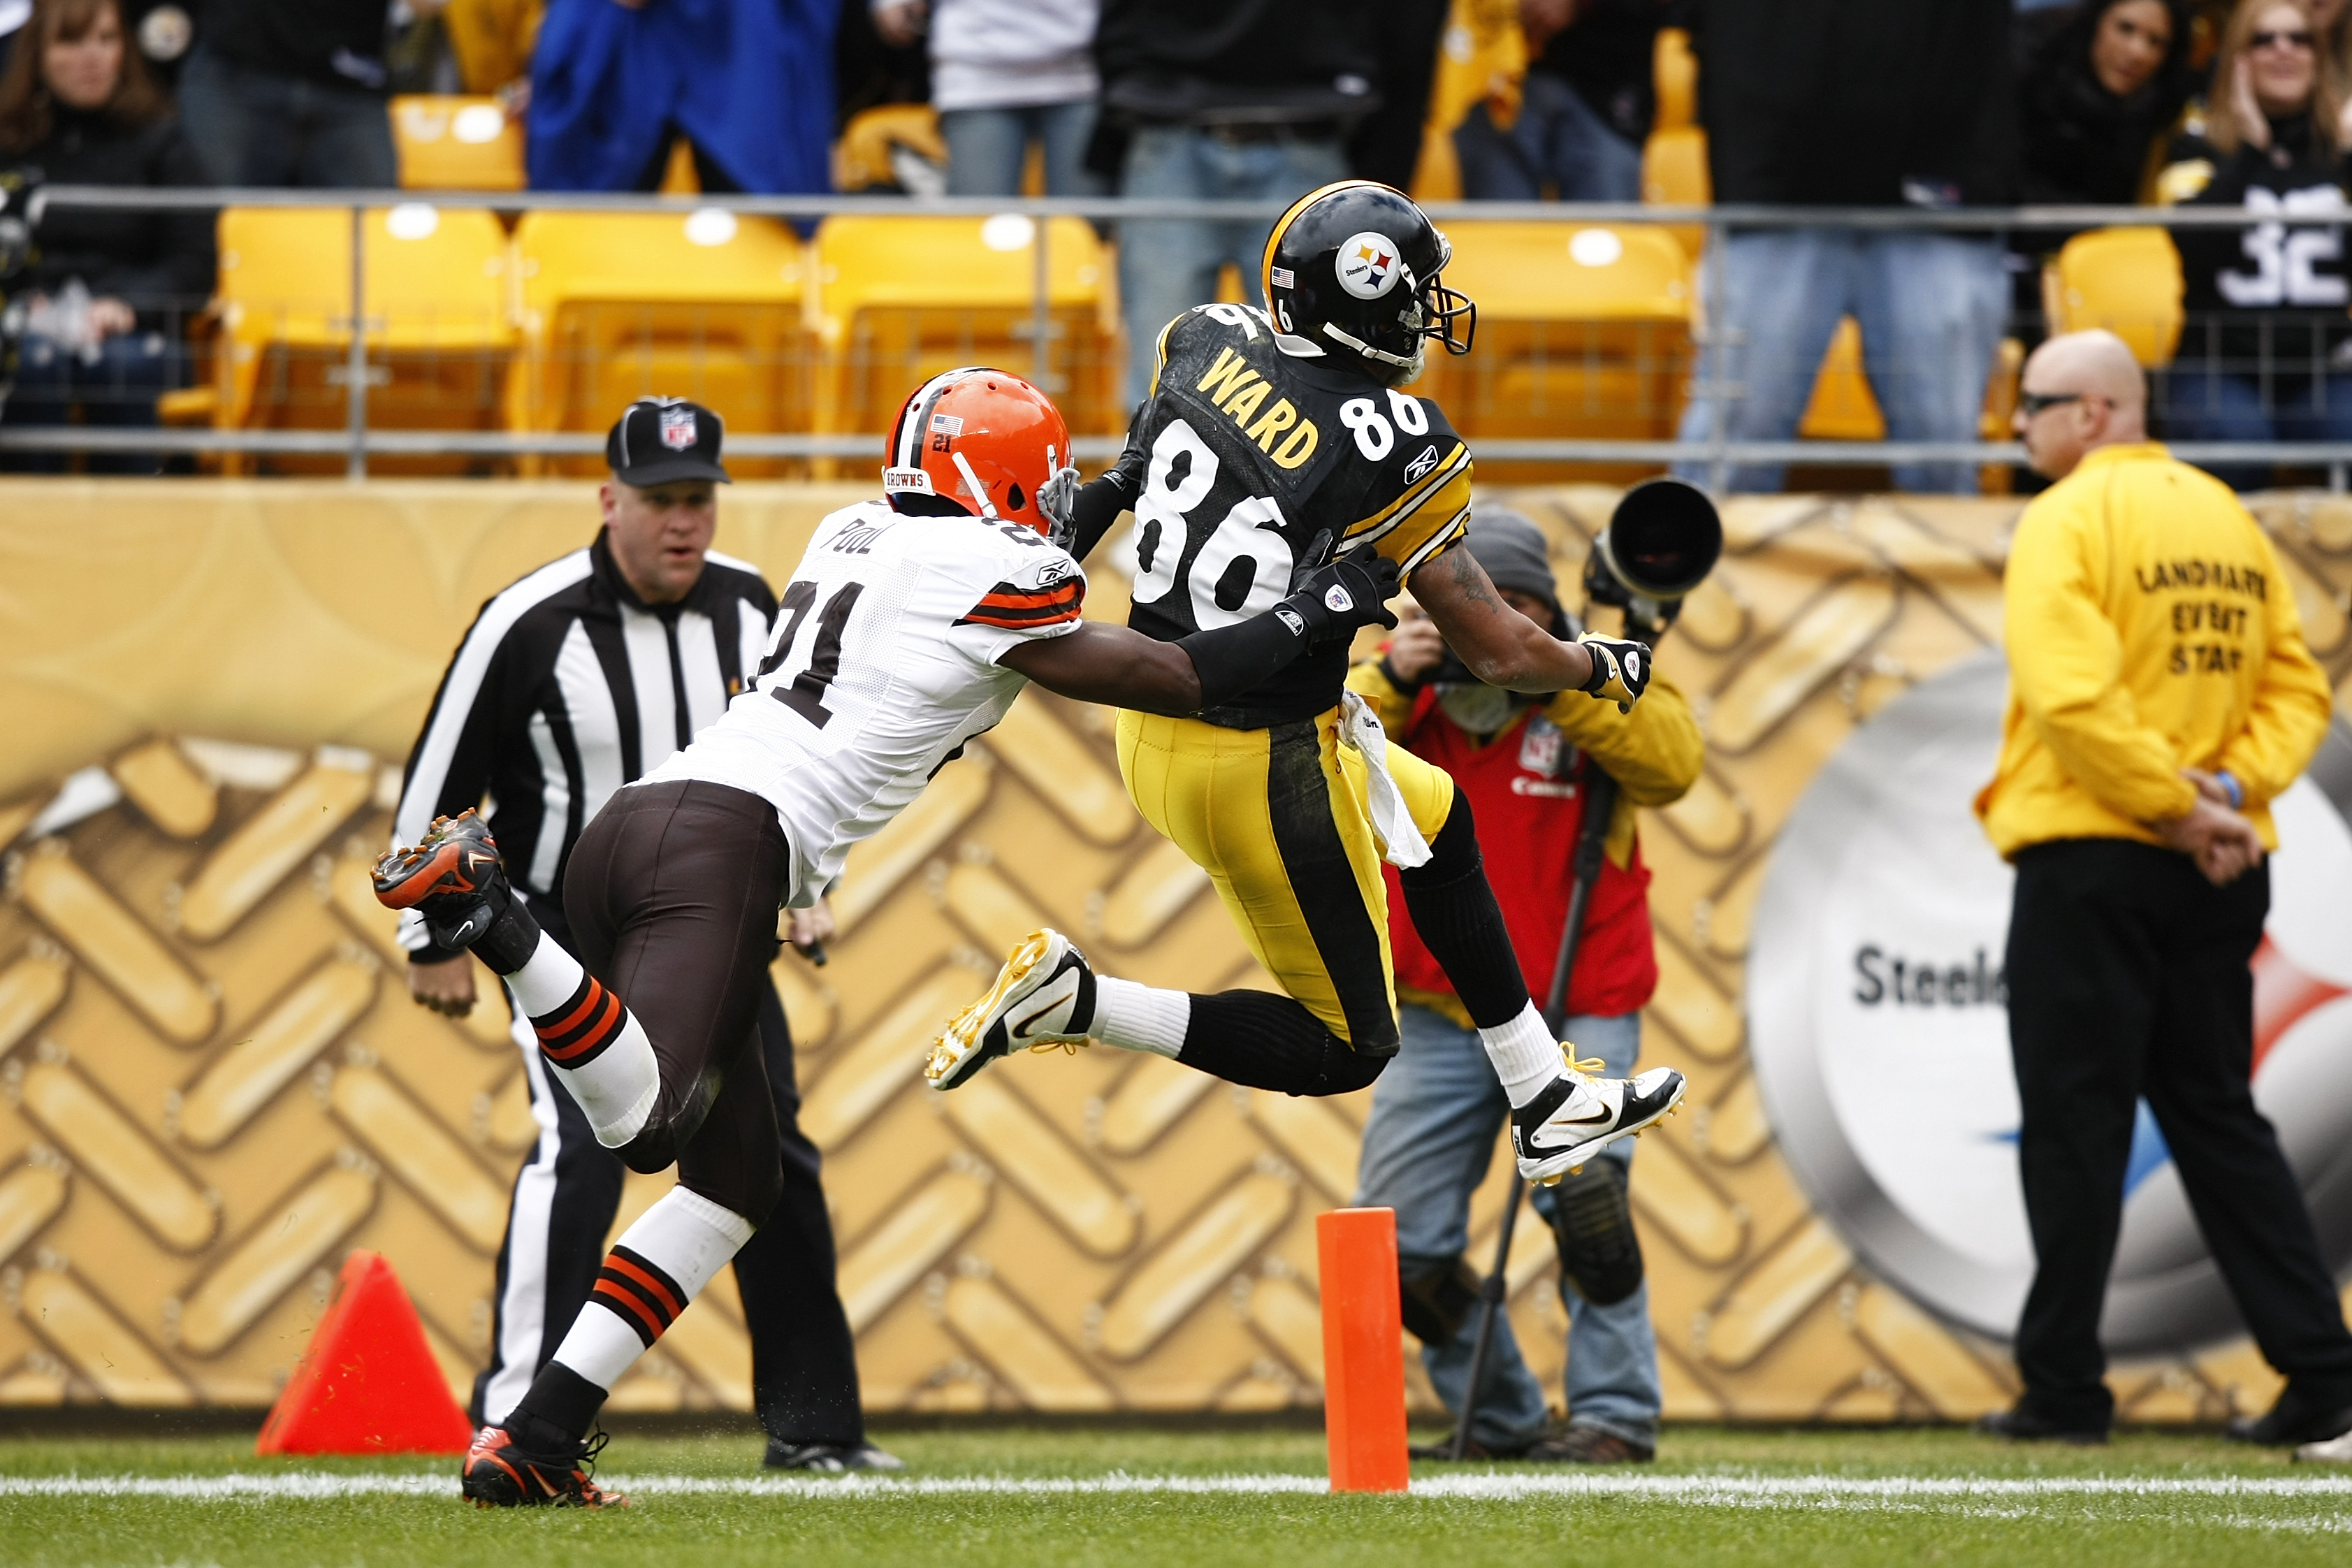 56084b61f Browns Vs Steelers  Keys To Victory For Pitt in This AFC North ...